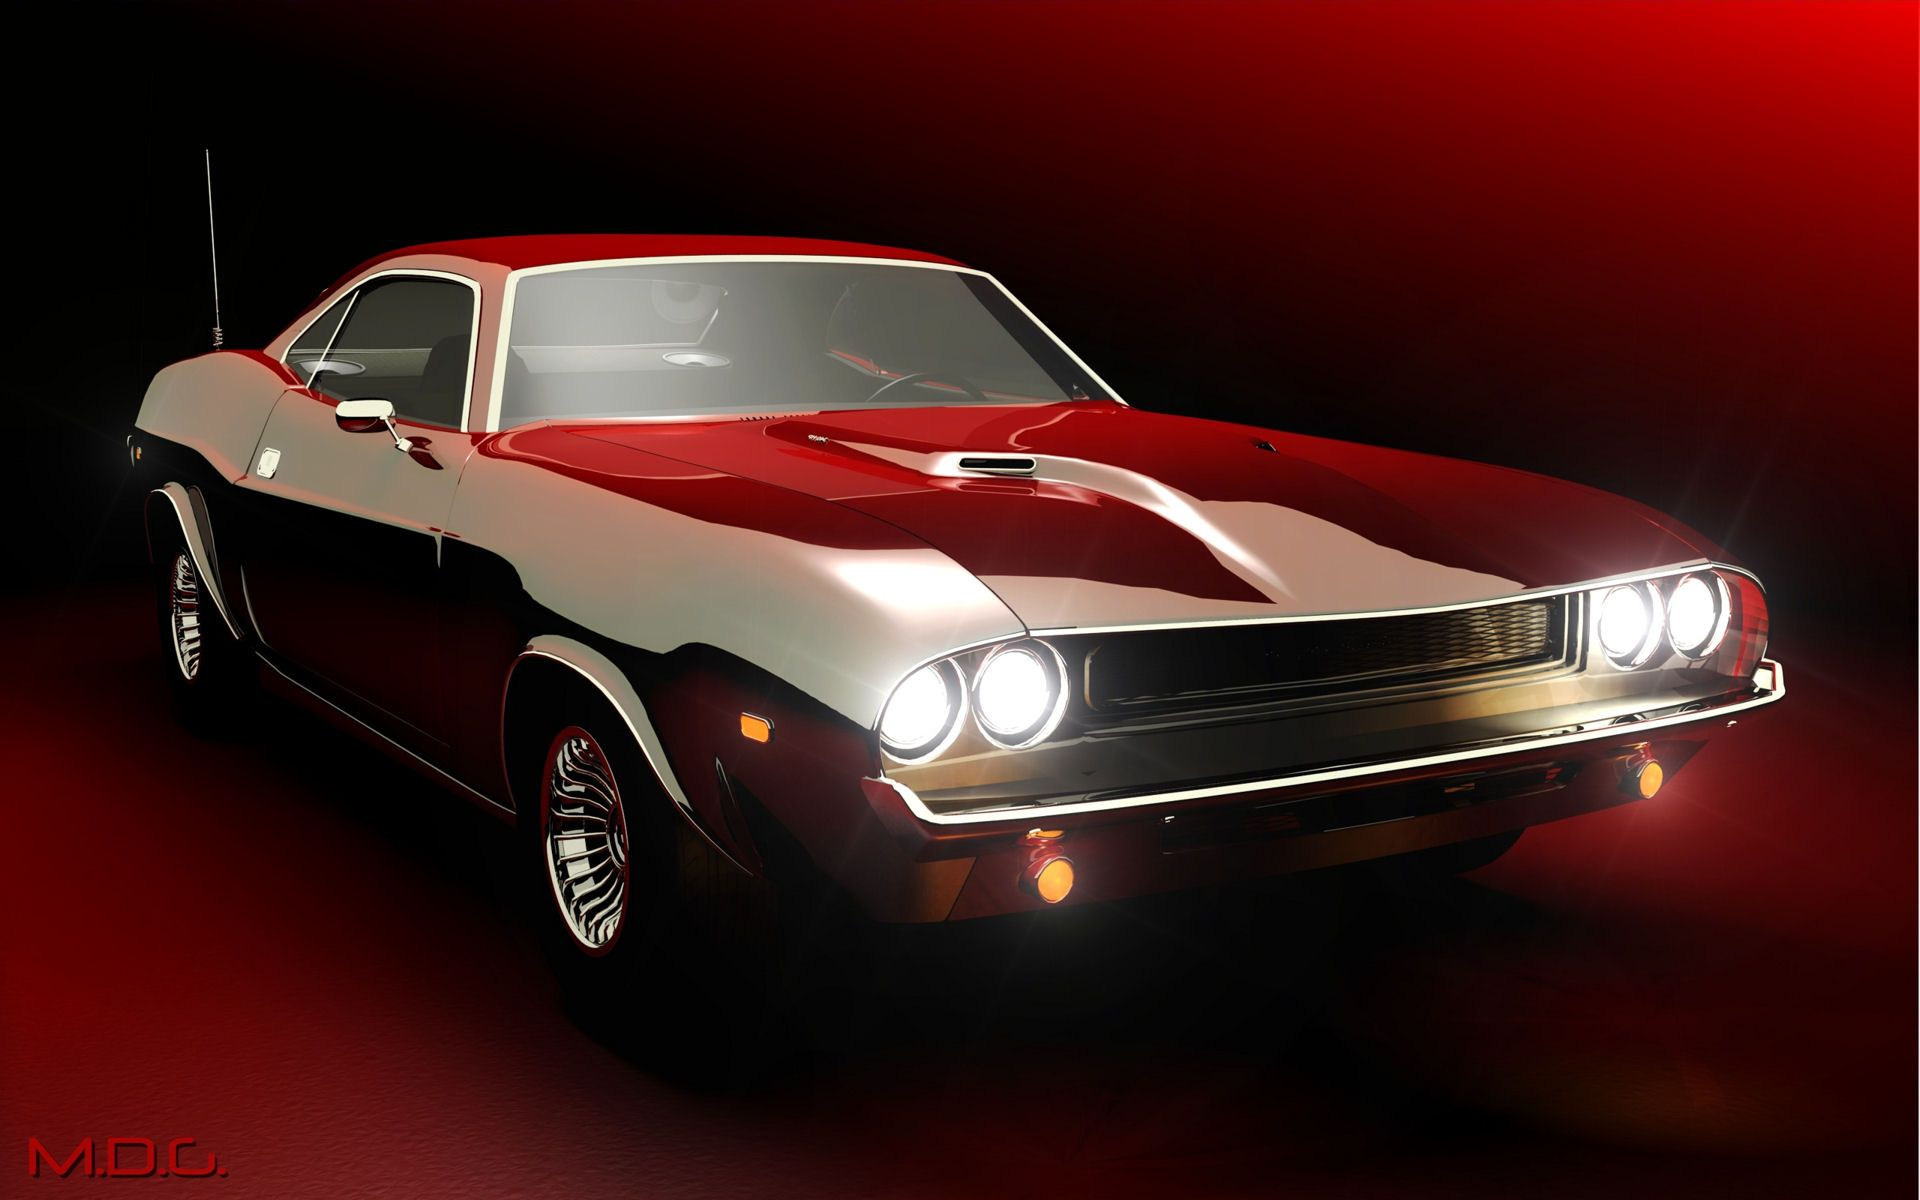 Car Wallpapers Sports Cars Wallpapers Classic Cars New: Muscle Cars - Bing Images